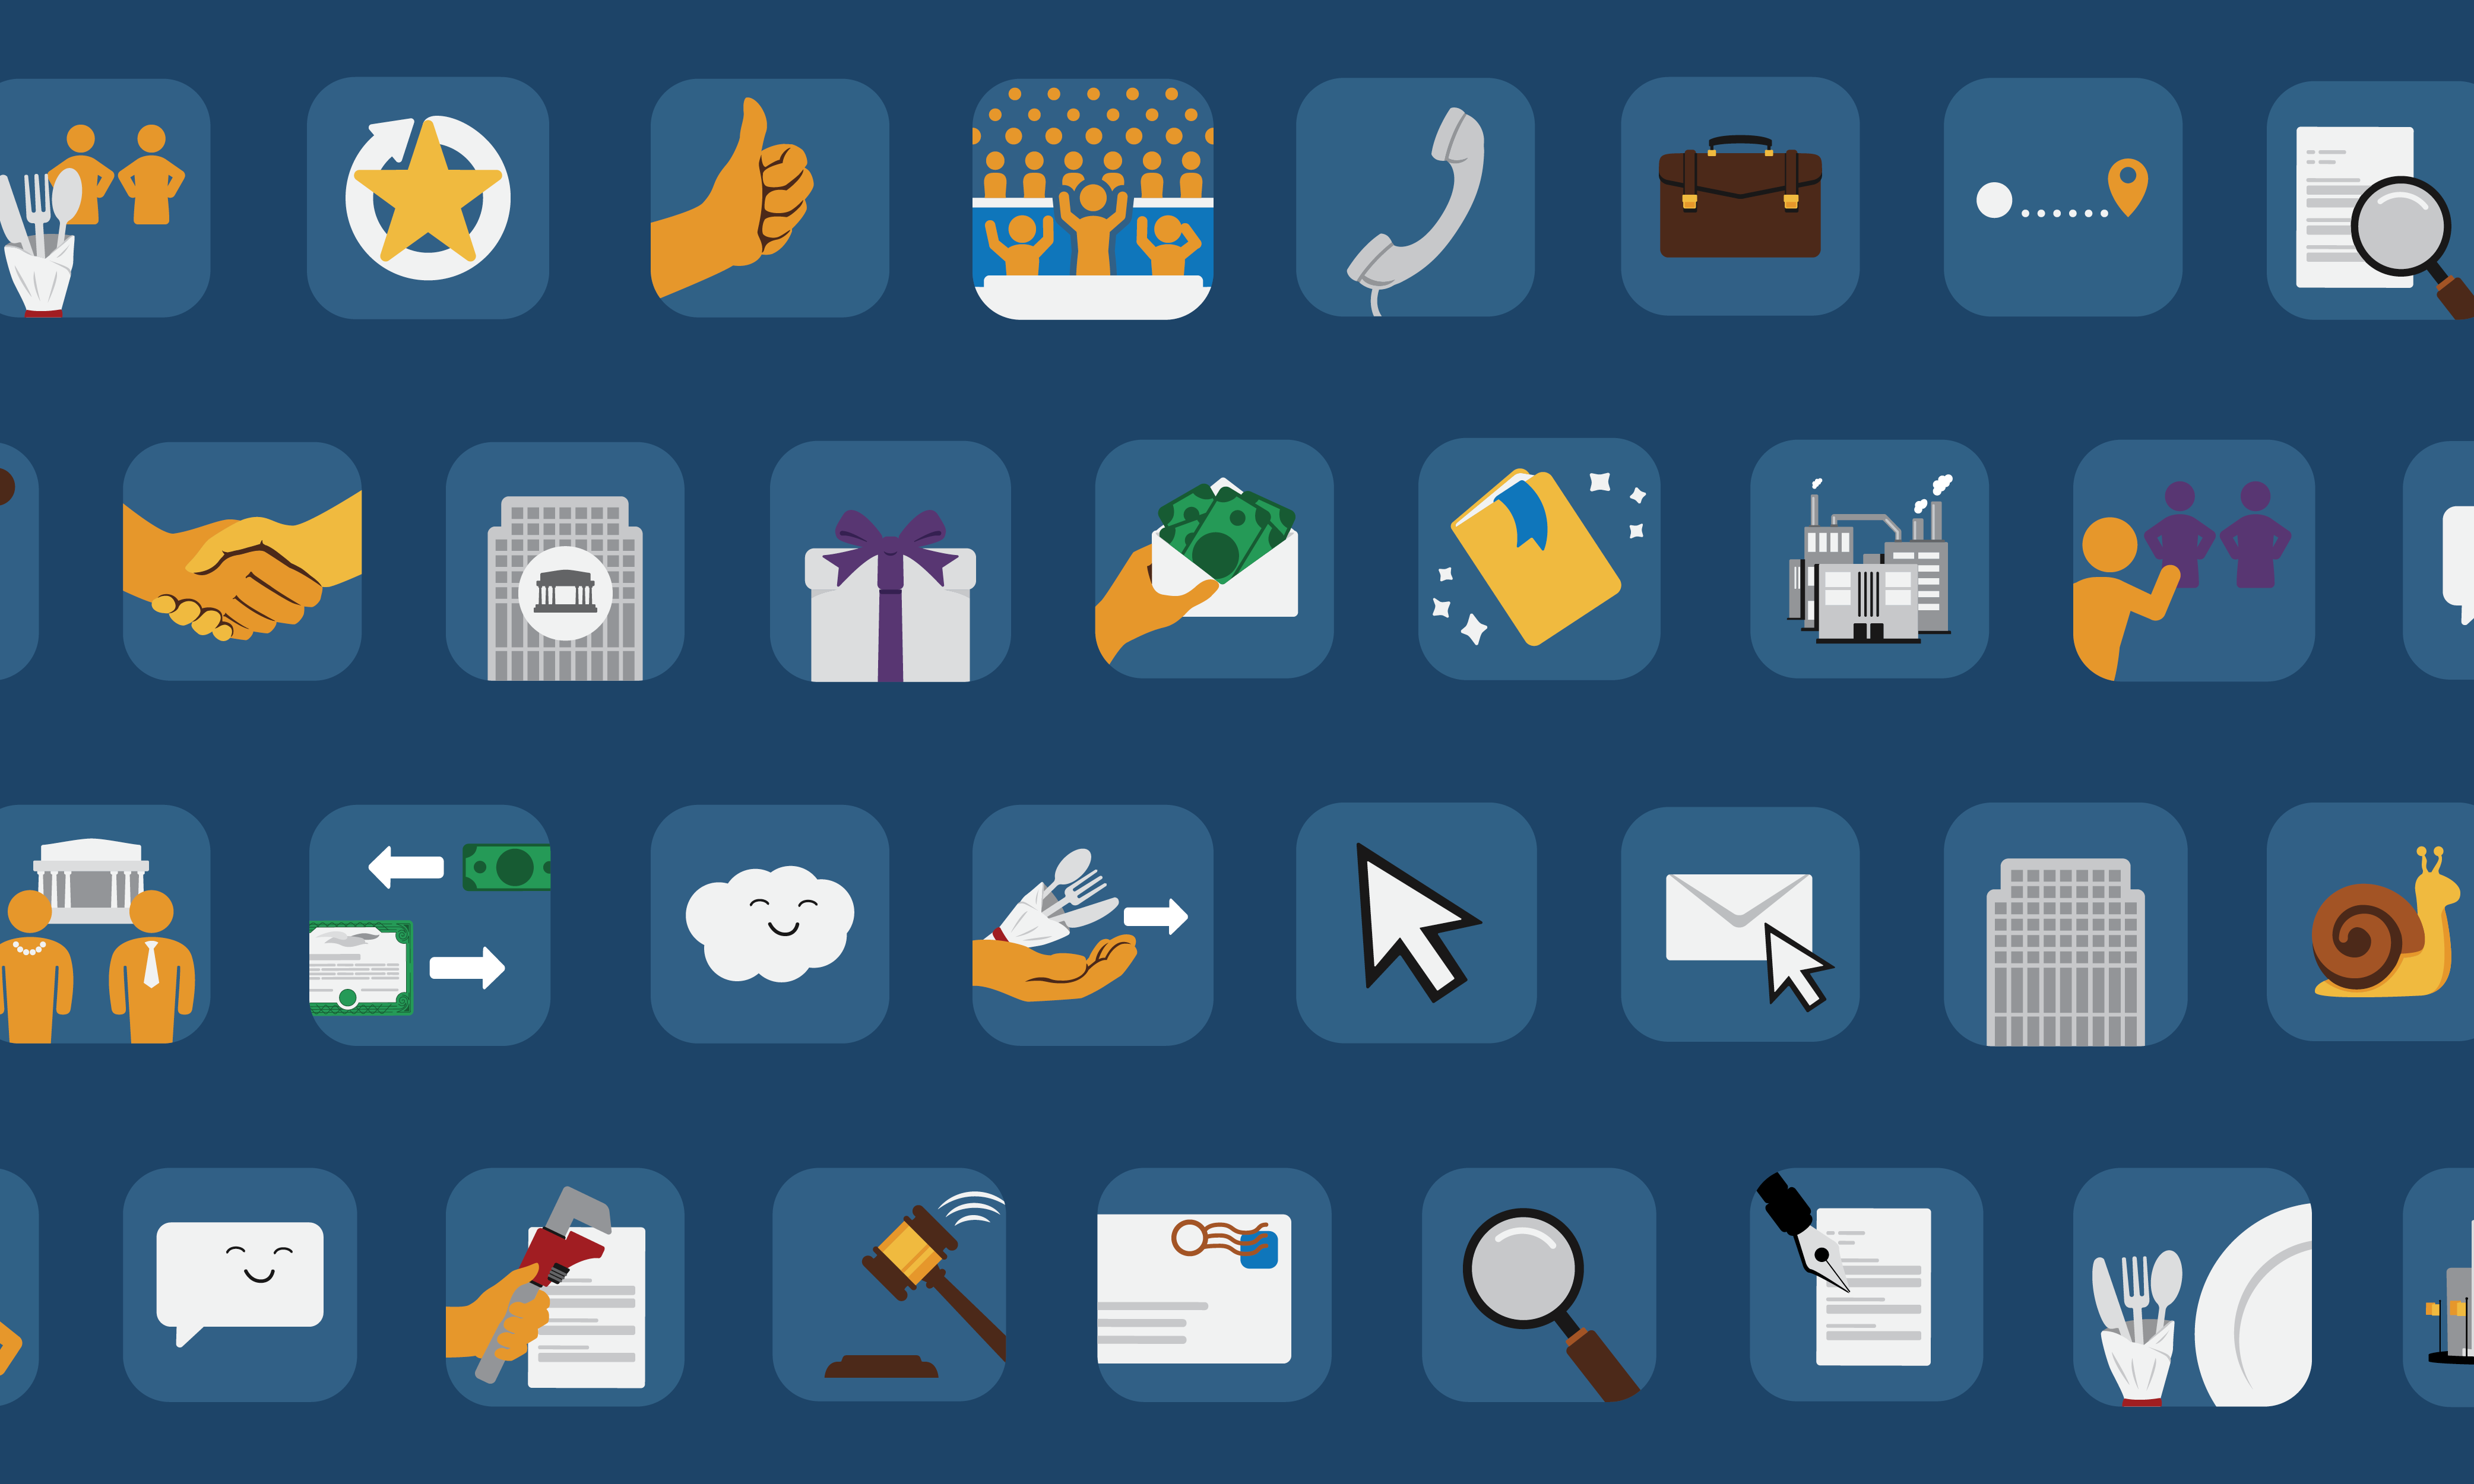 Standard-compliance-icons.png